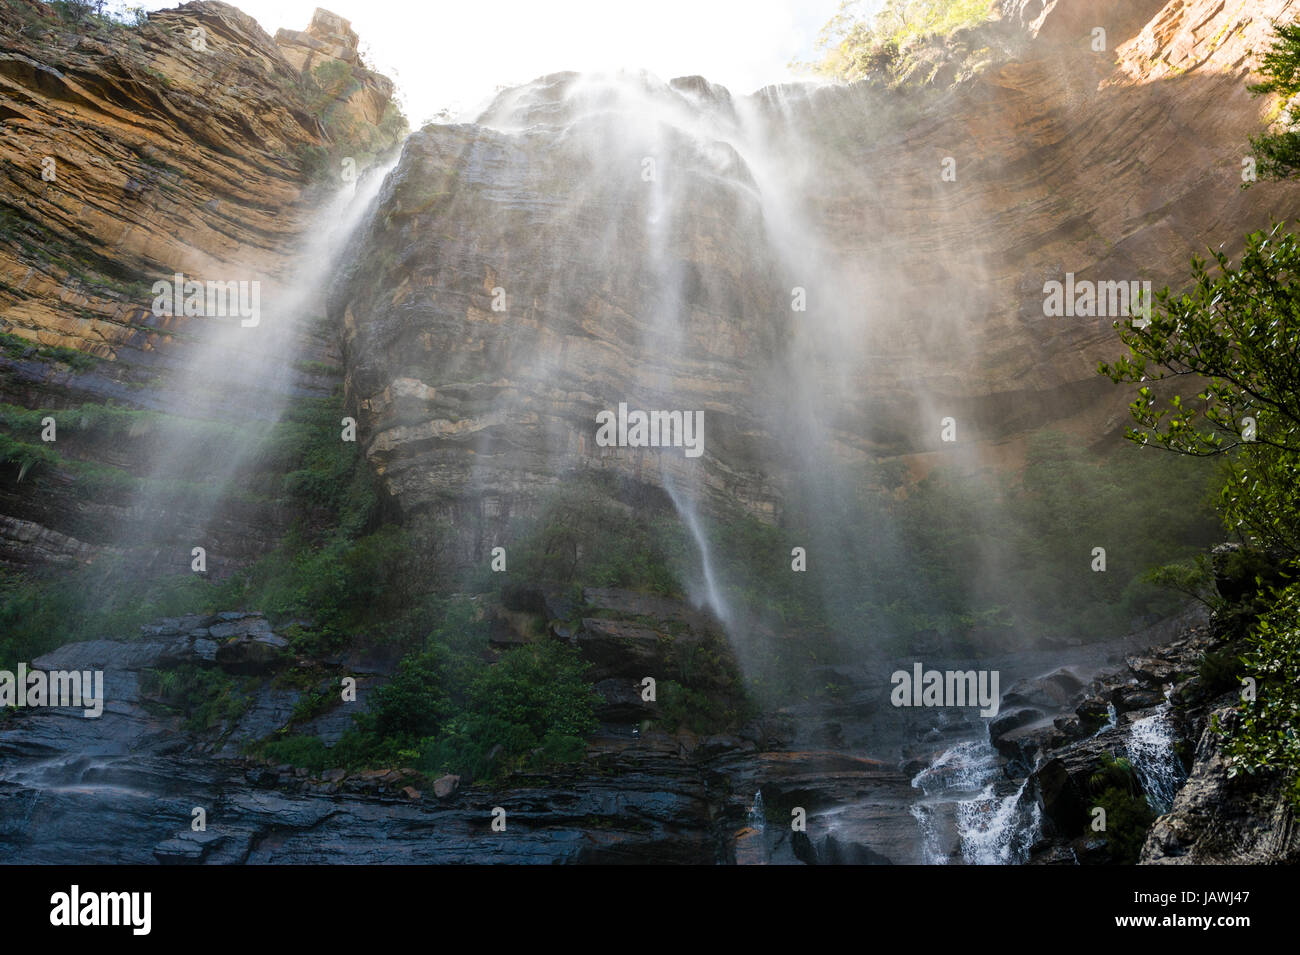 A curtain of mist and water cascades from a waterfall on a sandstone cliff. - Stock Image